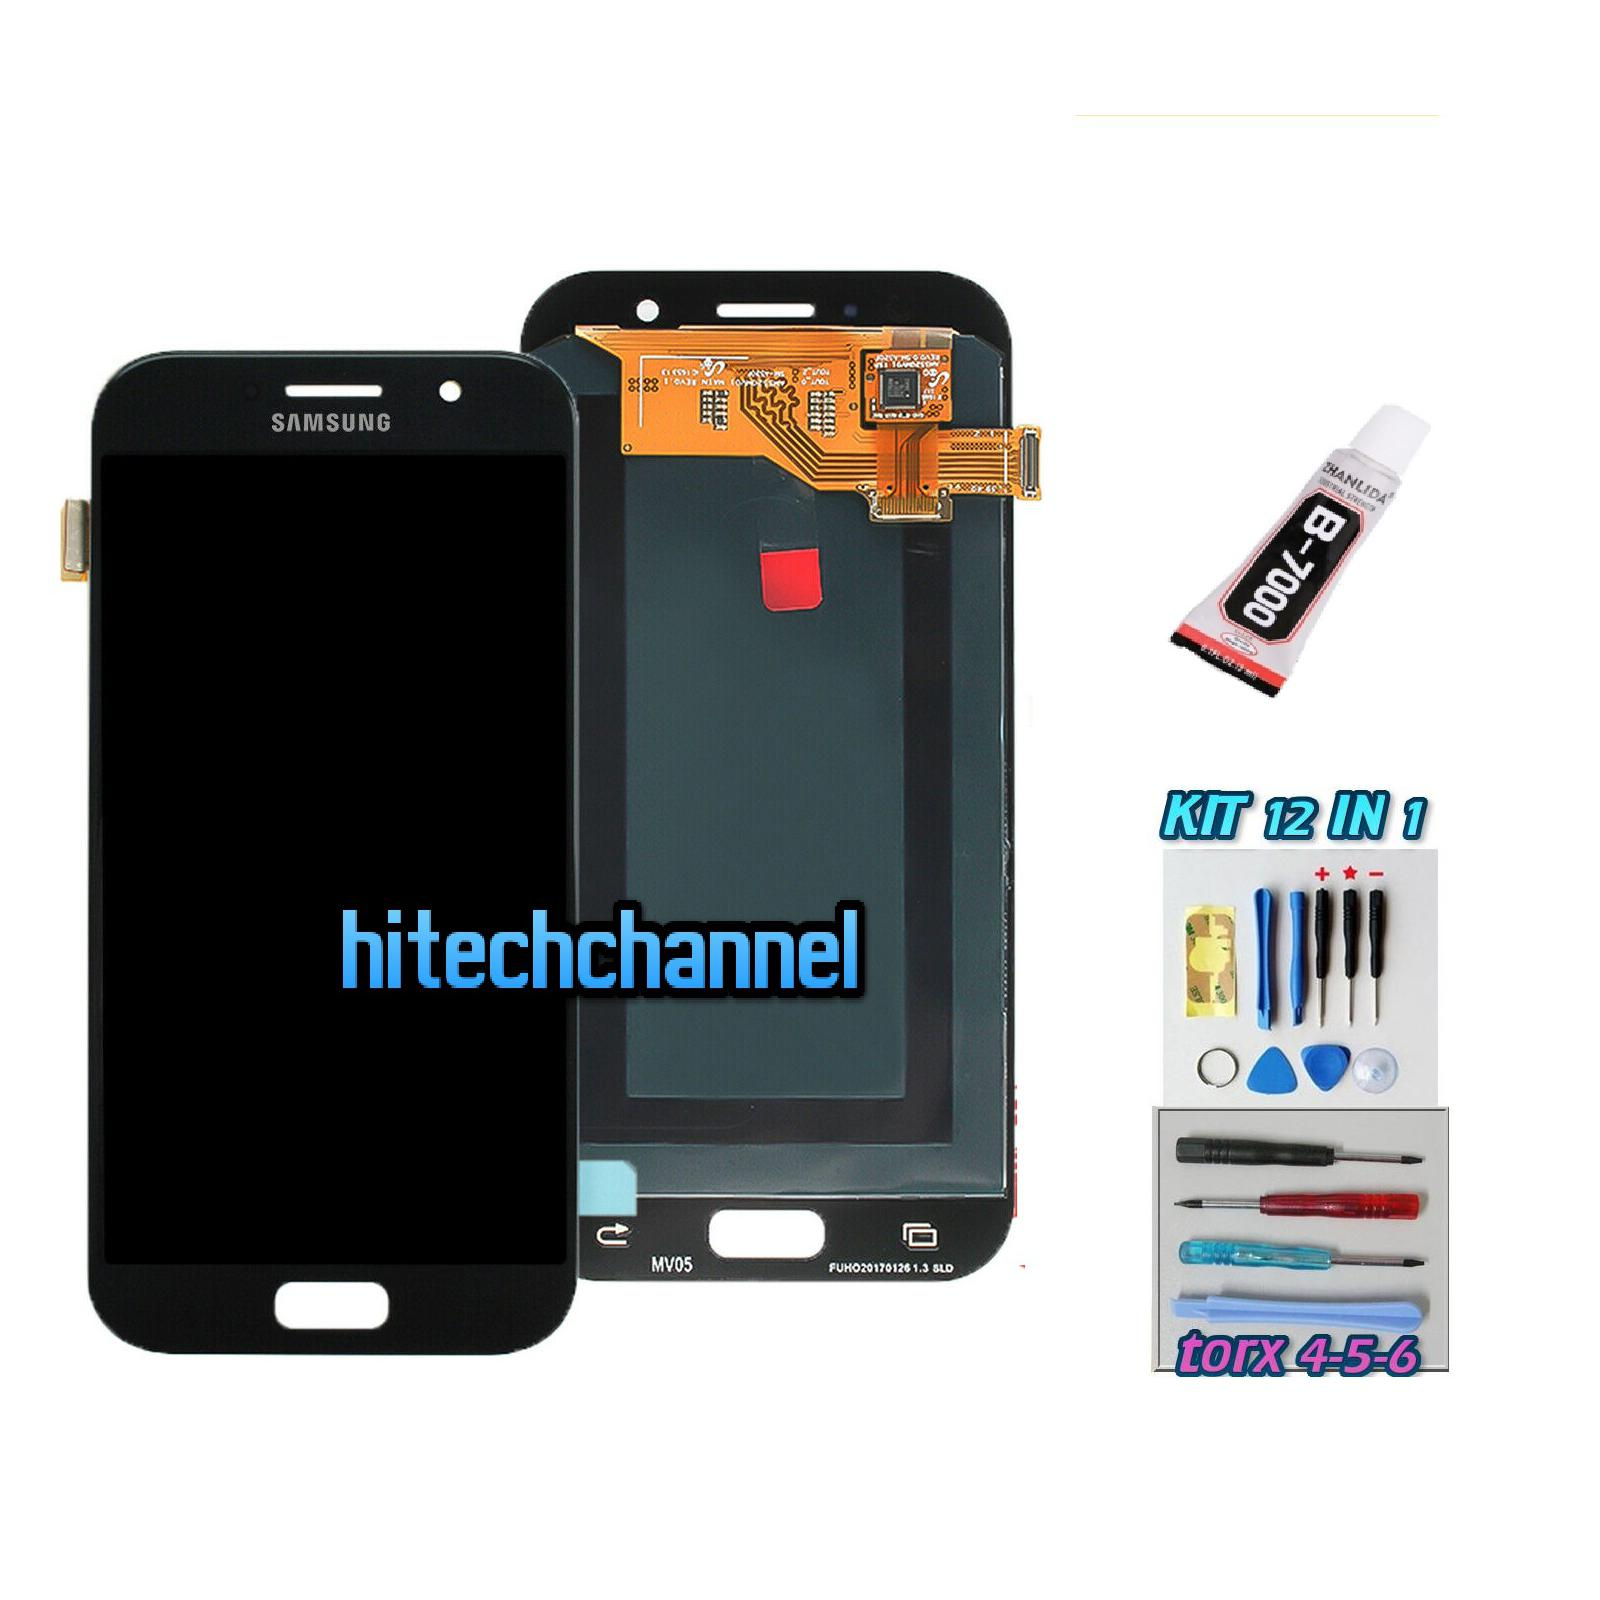 TOUCH SCREEN LCD DISPLAY NERO per Samsung GALAXY A5 2017 A520F SM-A520F + Kit 9 in 1 colla b7000 e biadesivo